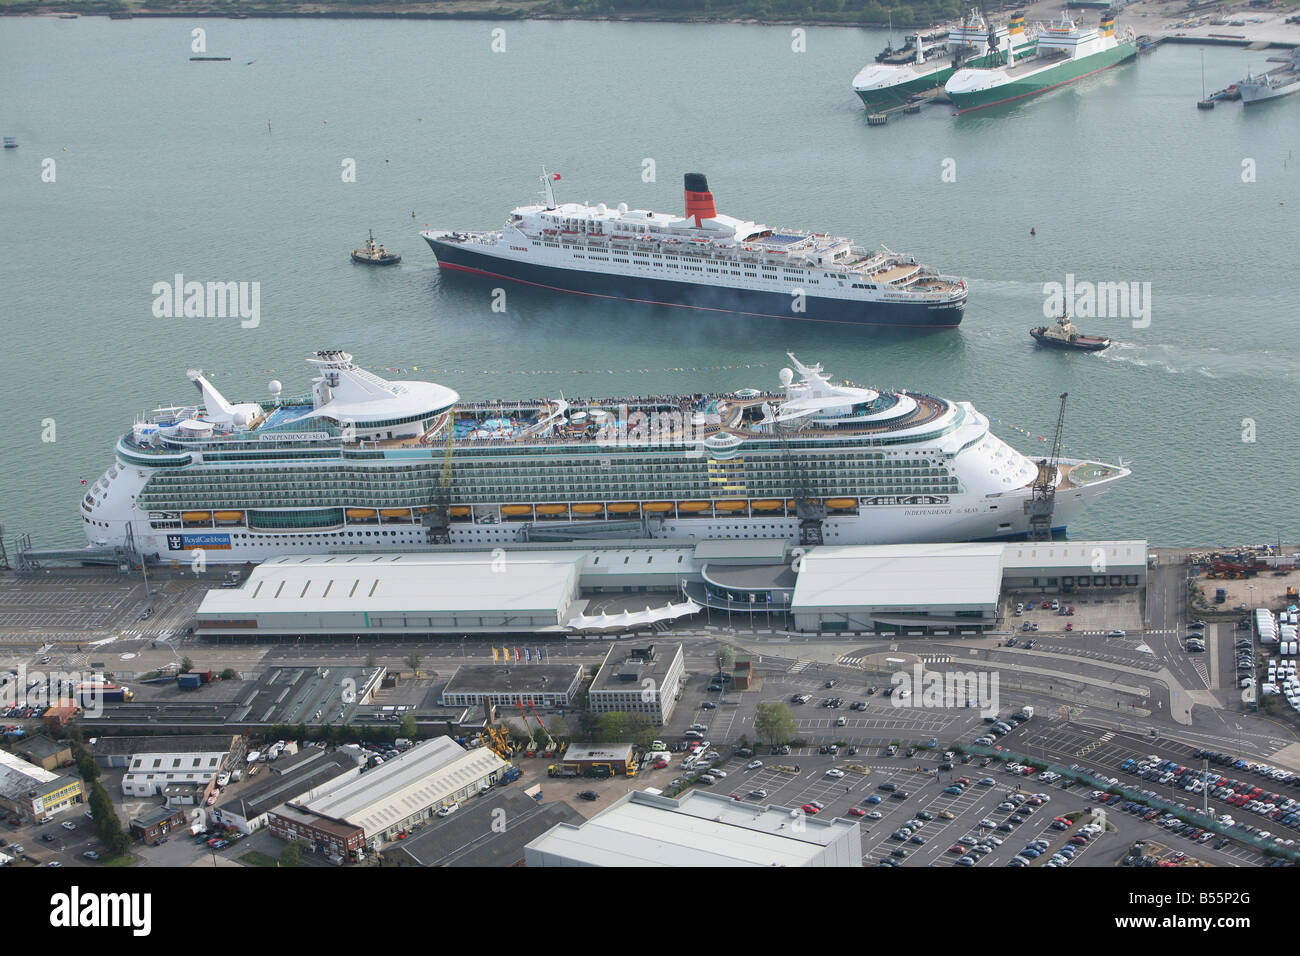 Queen Elisabeth 2 (QE2) passes Independence of the Seas on it's way out of Southampton Docks. - Stock Image